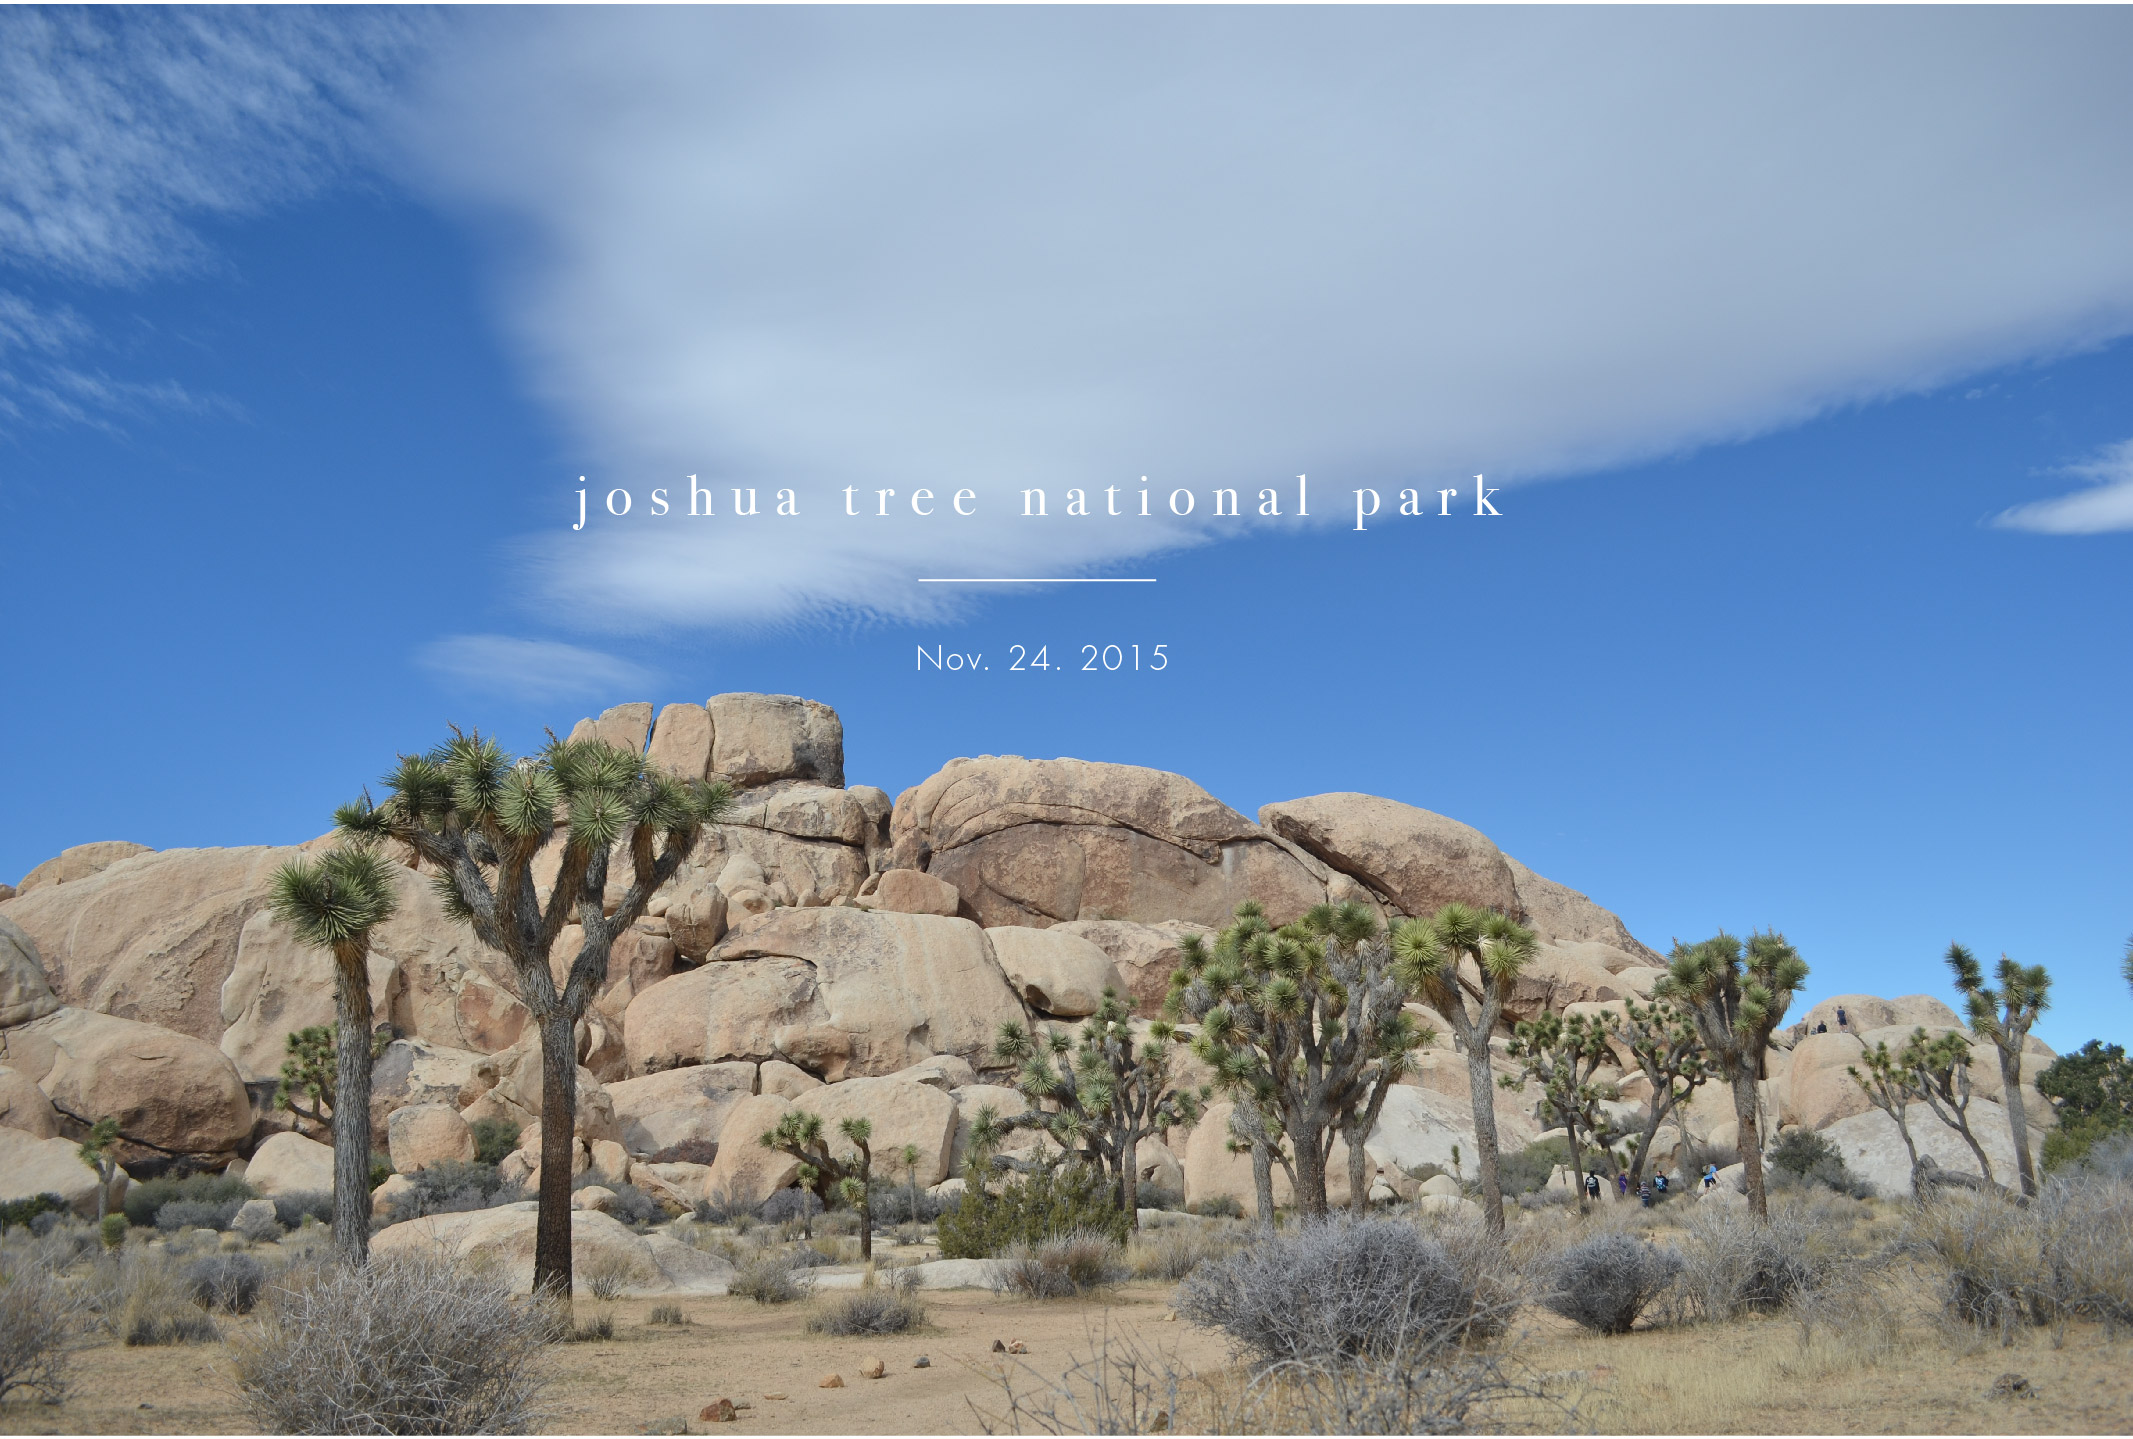 Have heard a lot of good things about Joshua tree national park but didn't have a chance to go.  One day I woke up and decided to drive there from Pasadena by myself. It was beautiful and a little bit chilly in winter.